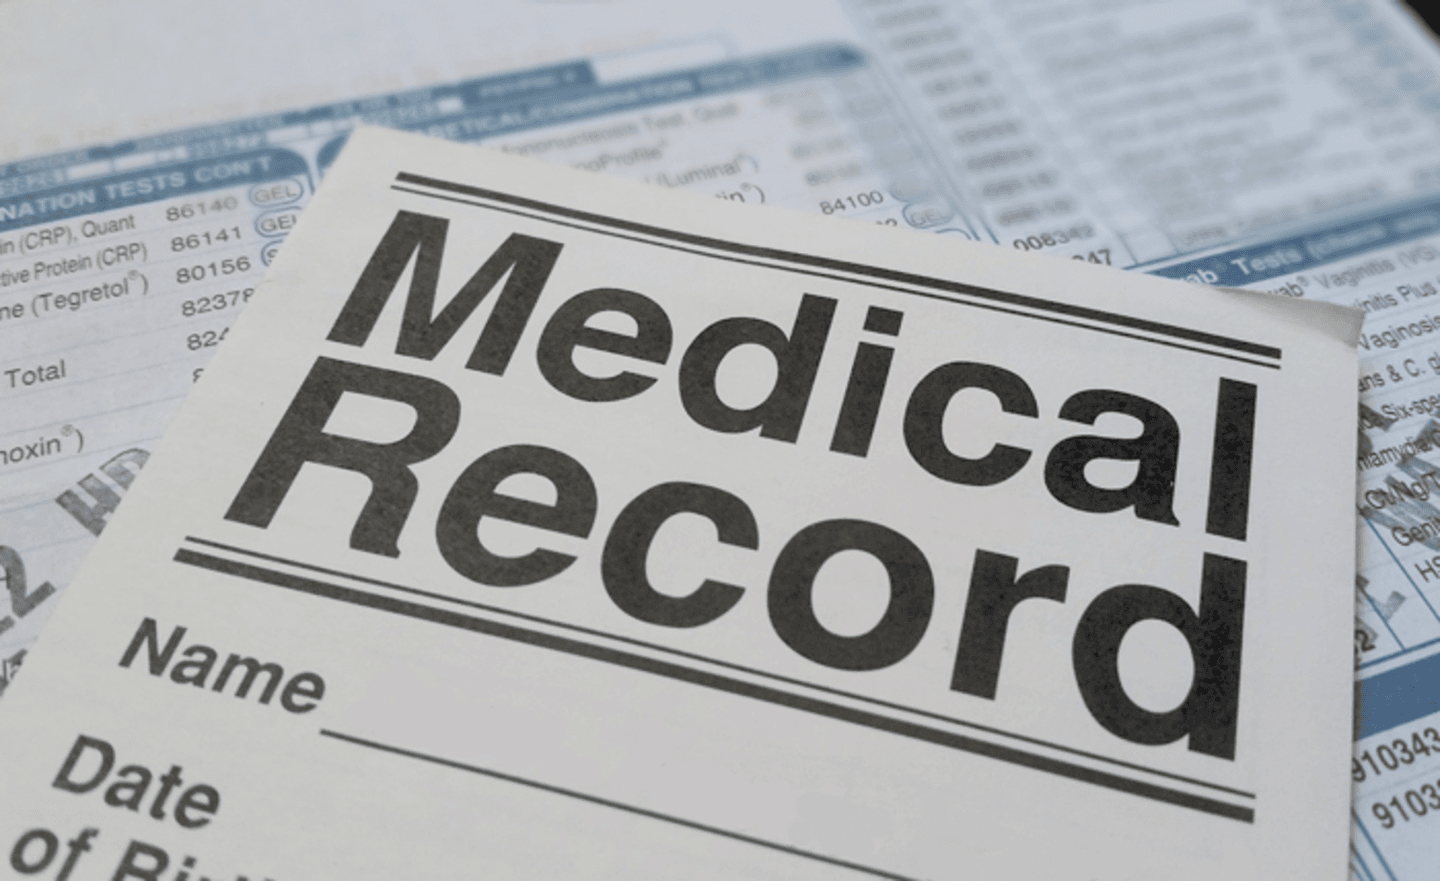 medical records image